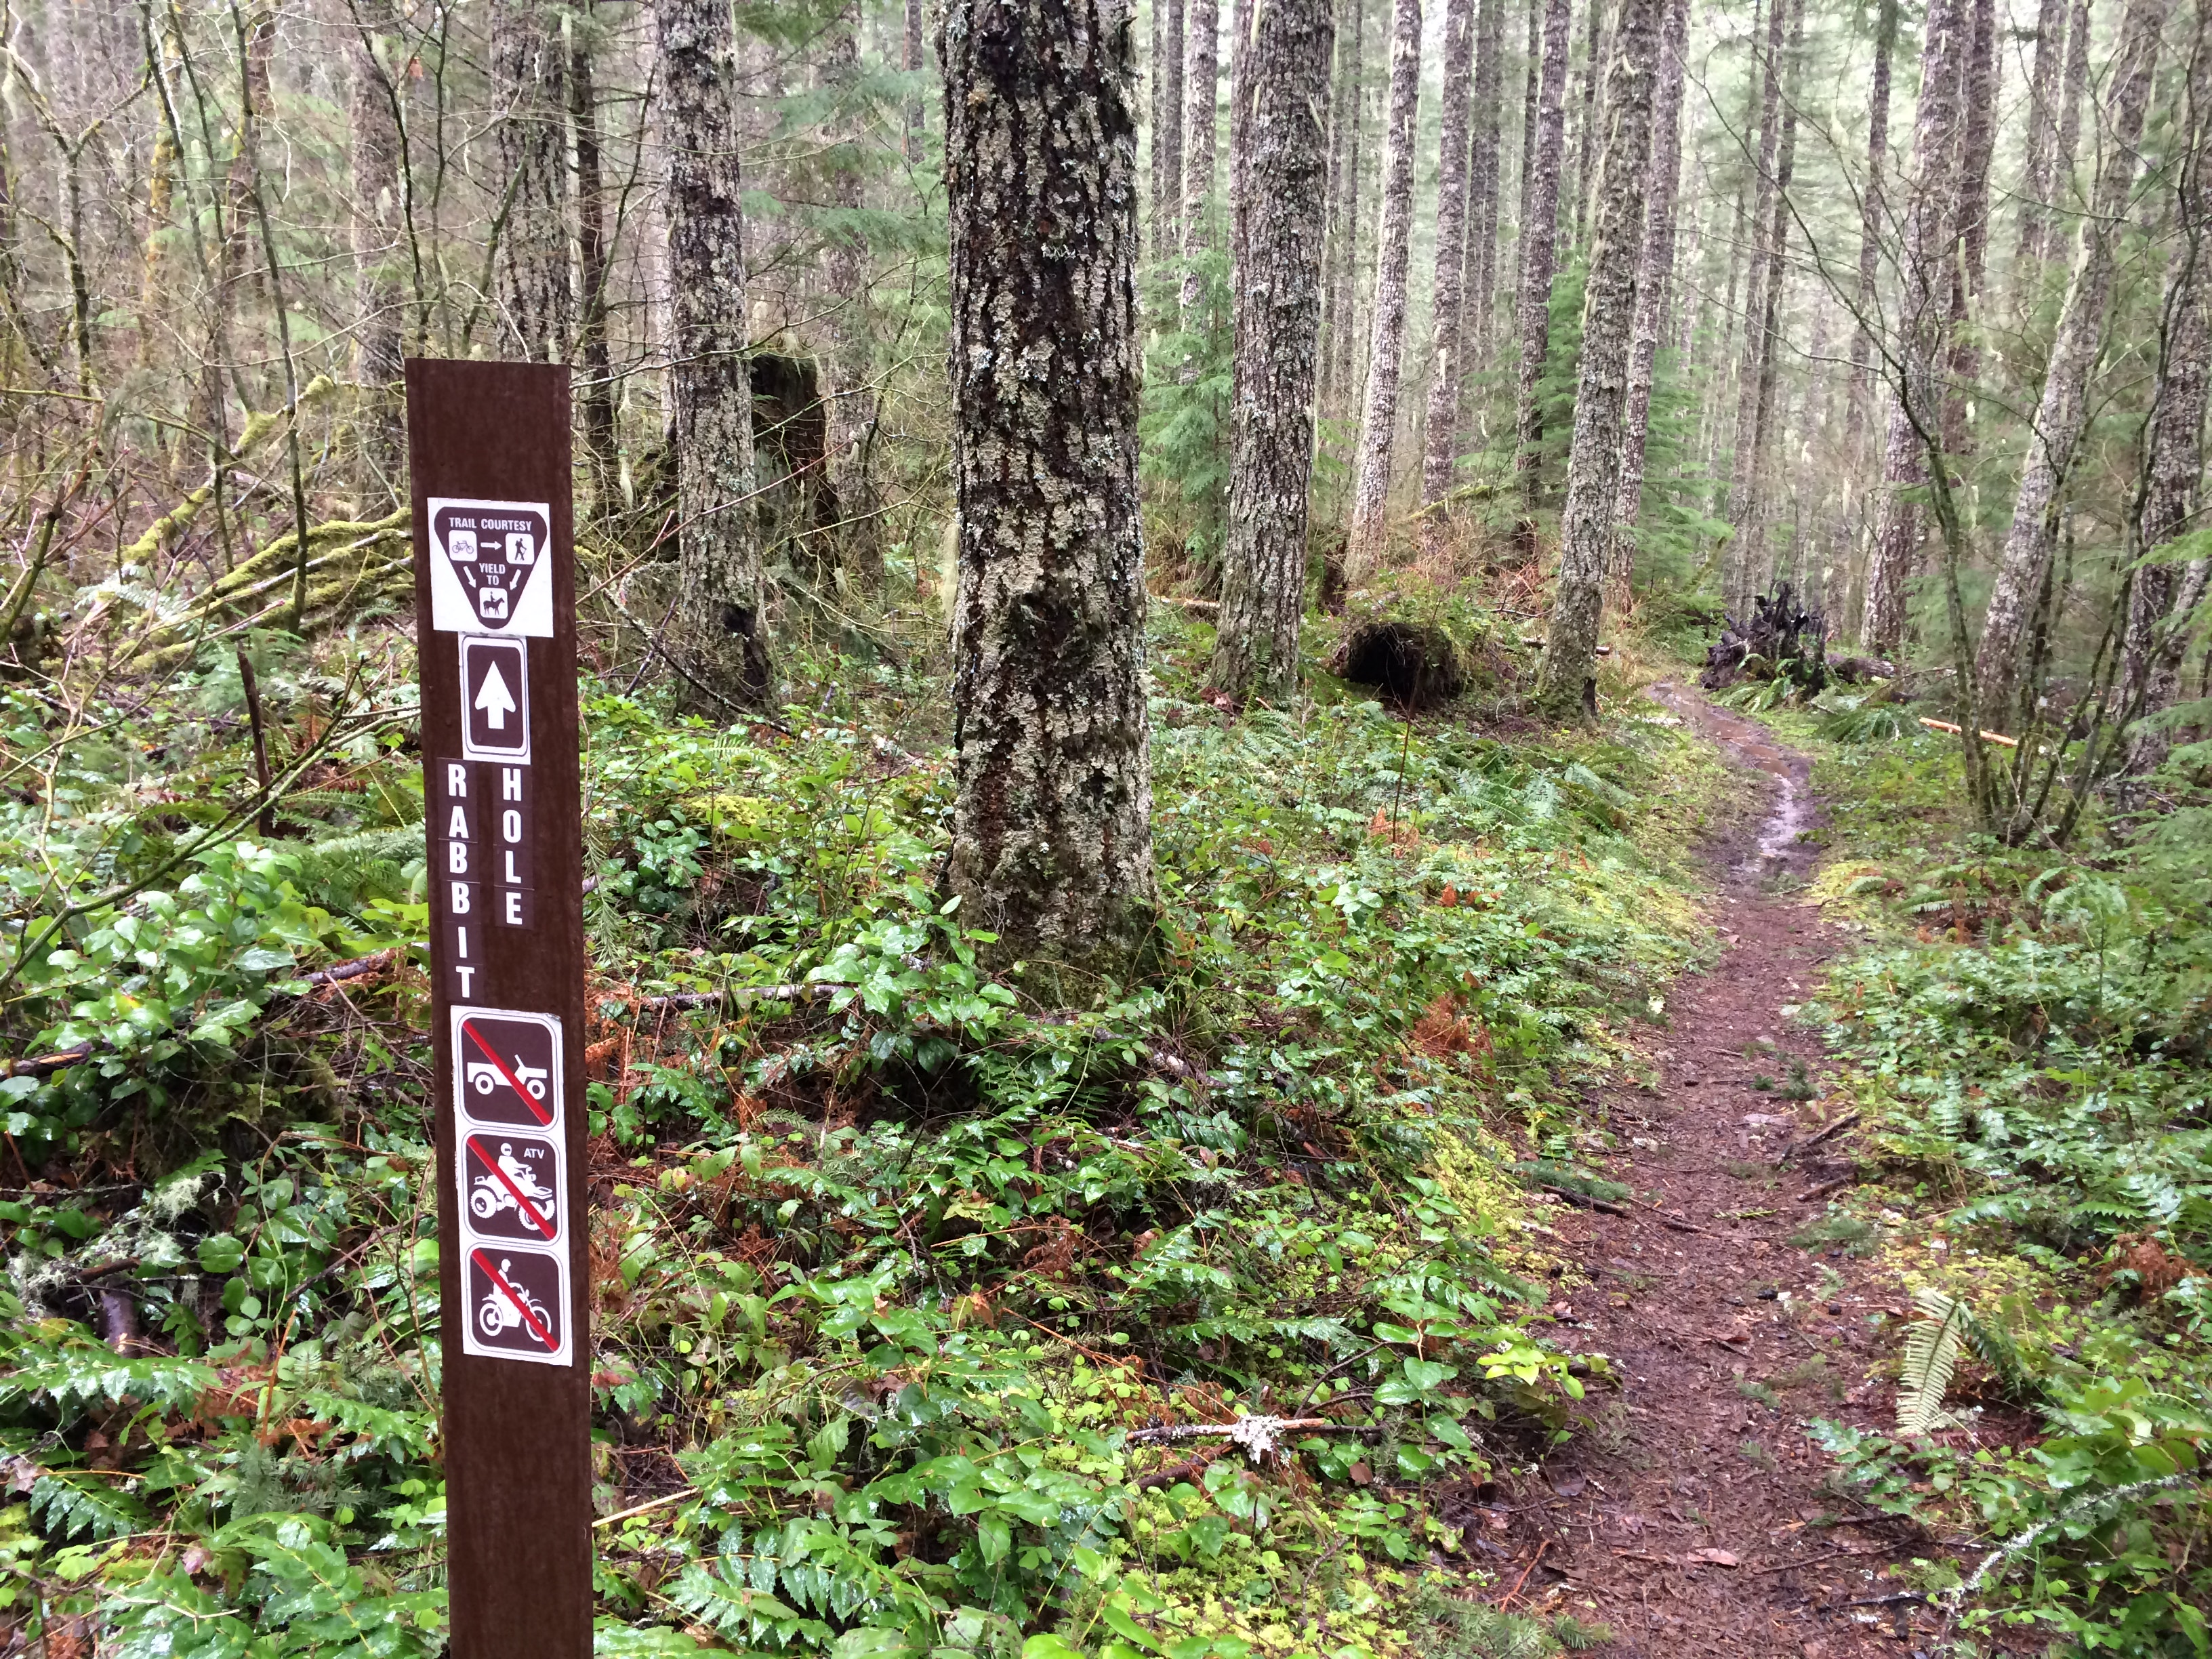 On the trail! Photo credit: Marilyn Tycer